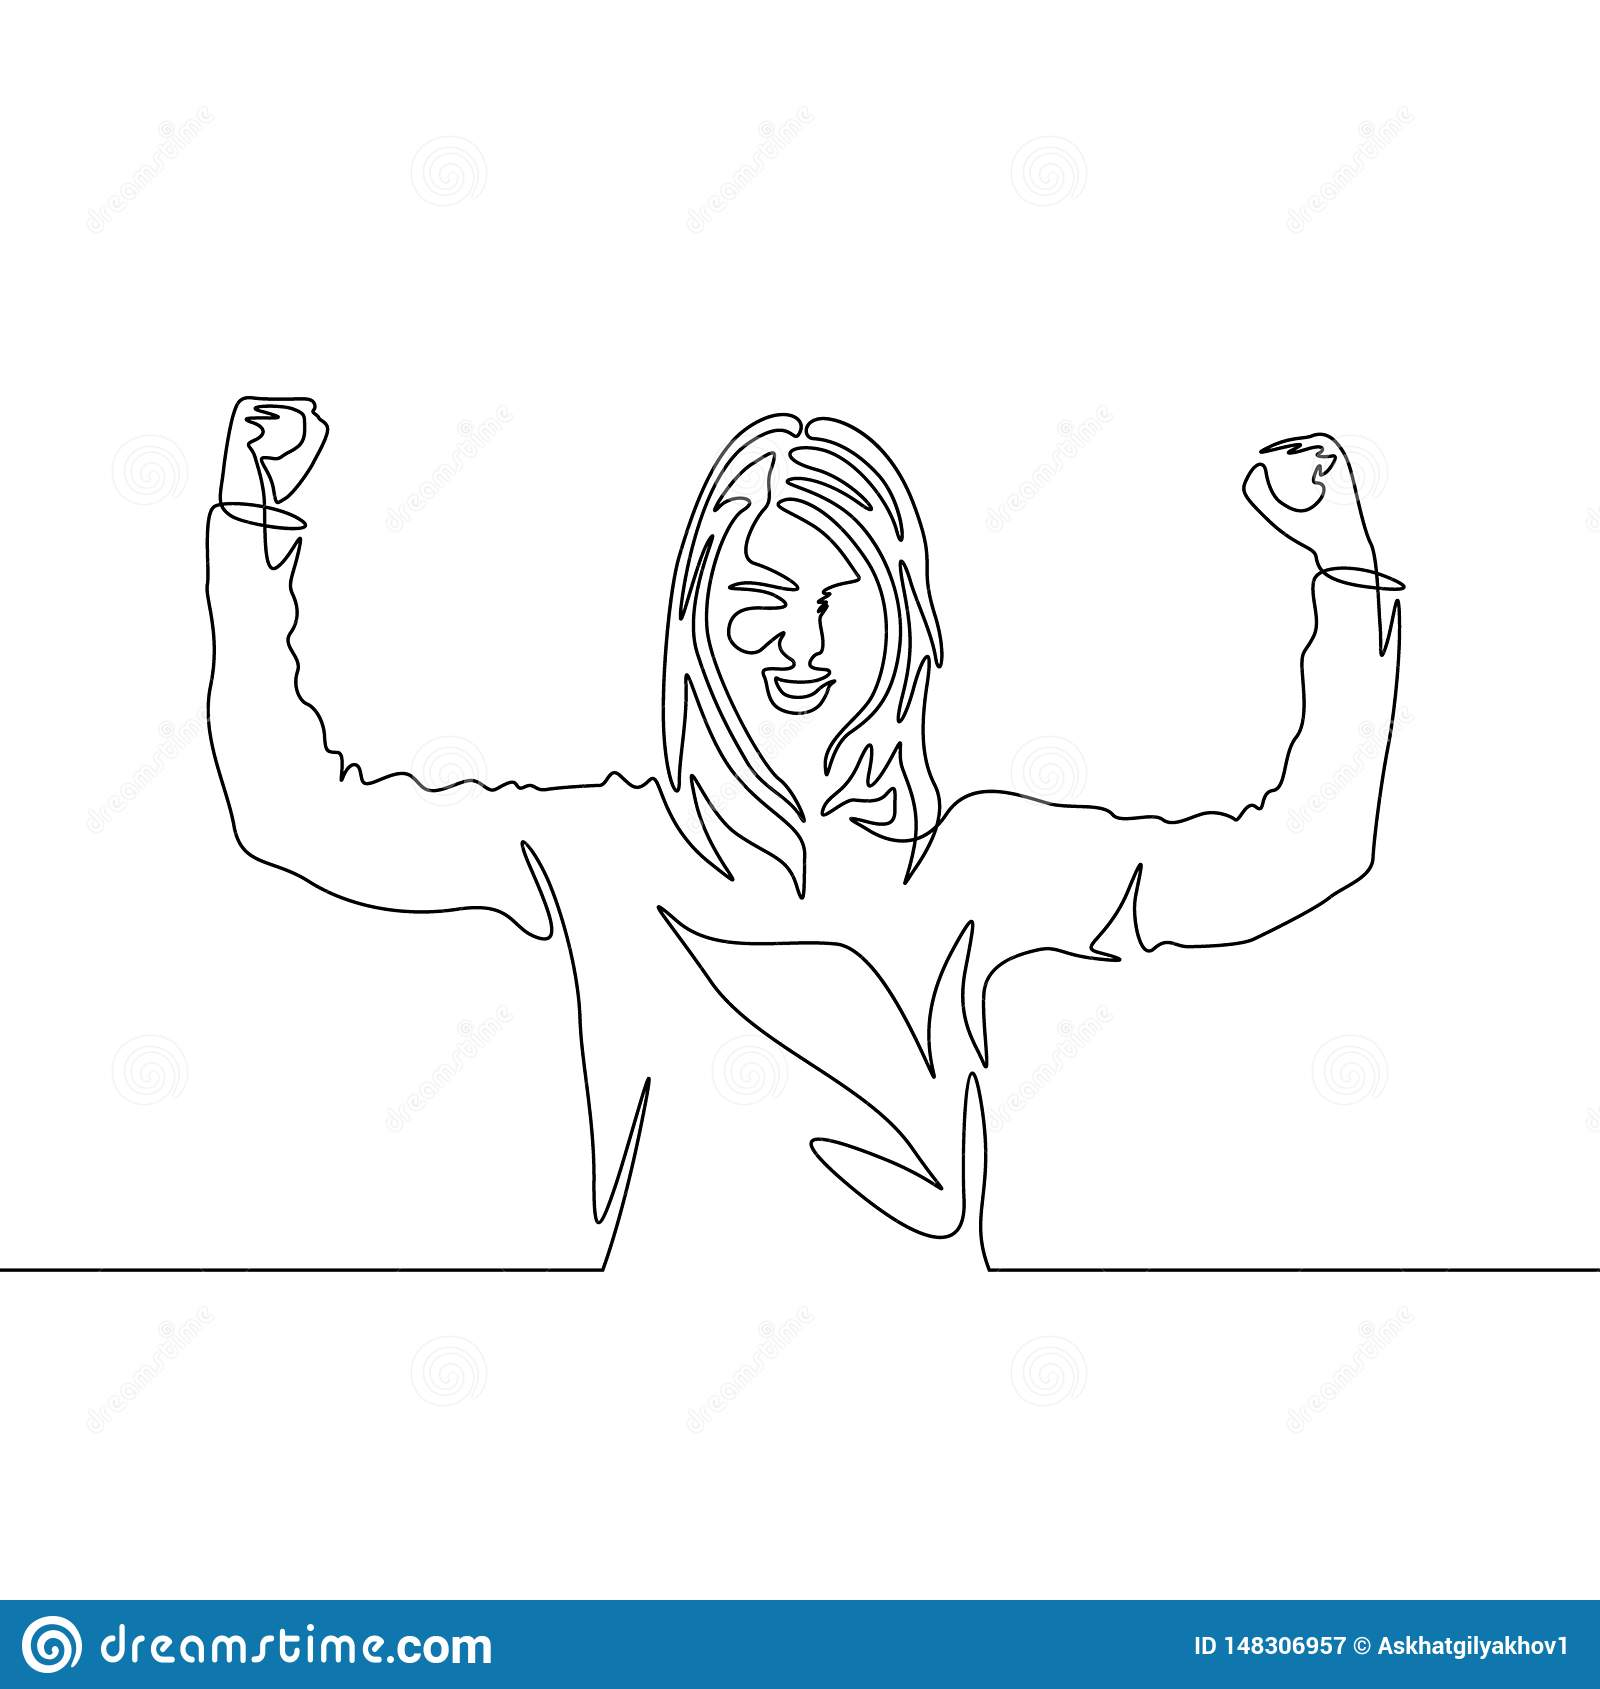 Continuous one line drawing Girl power pose